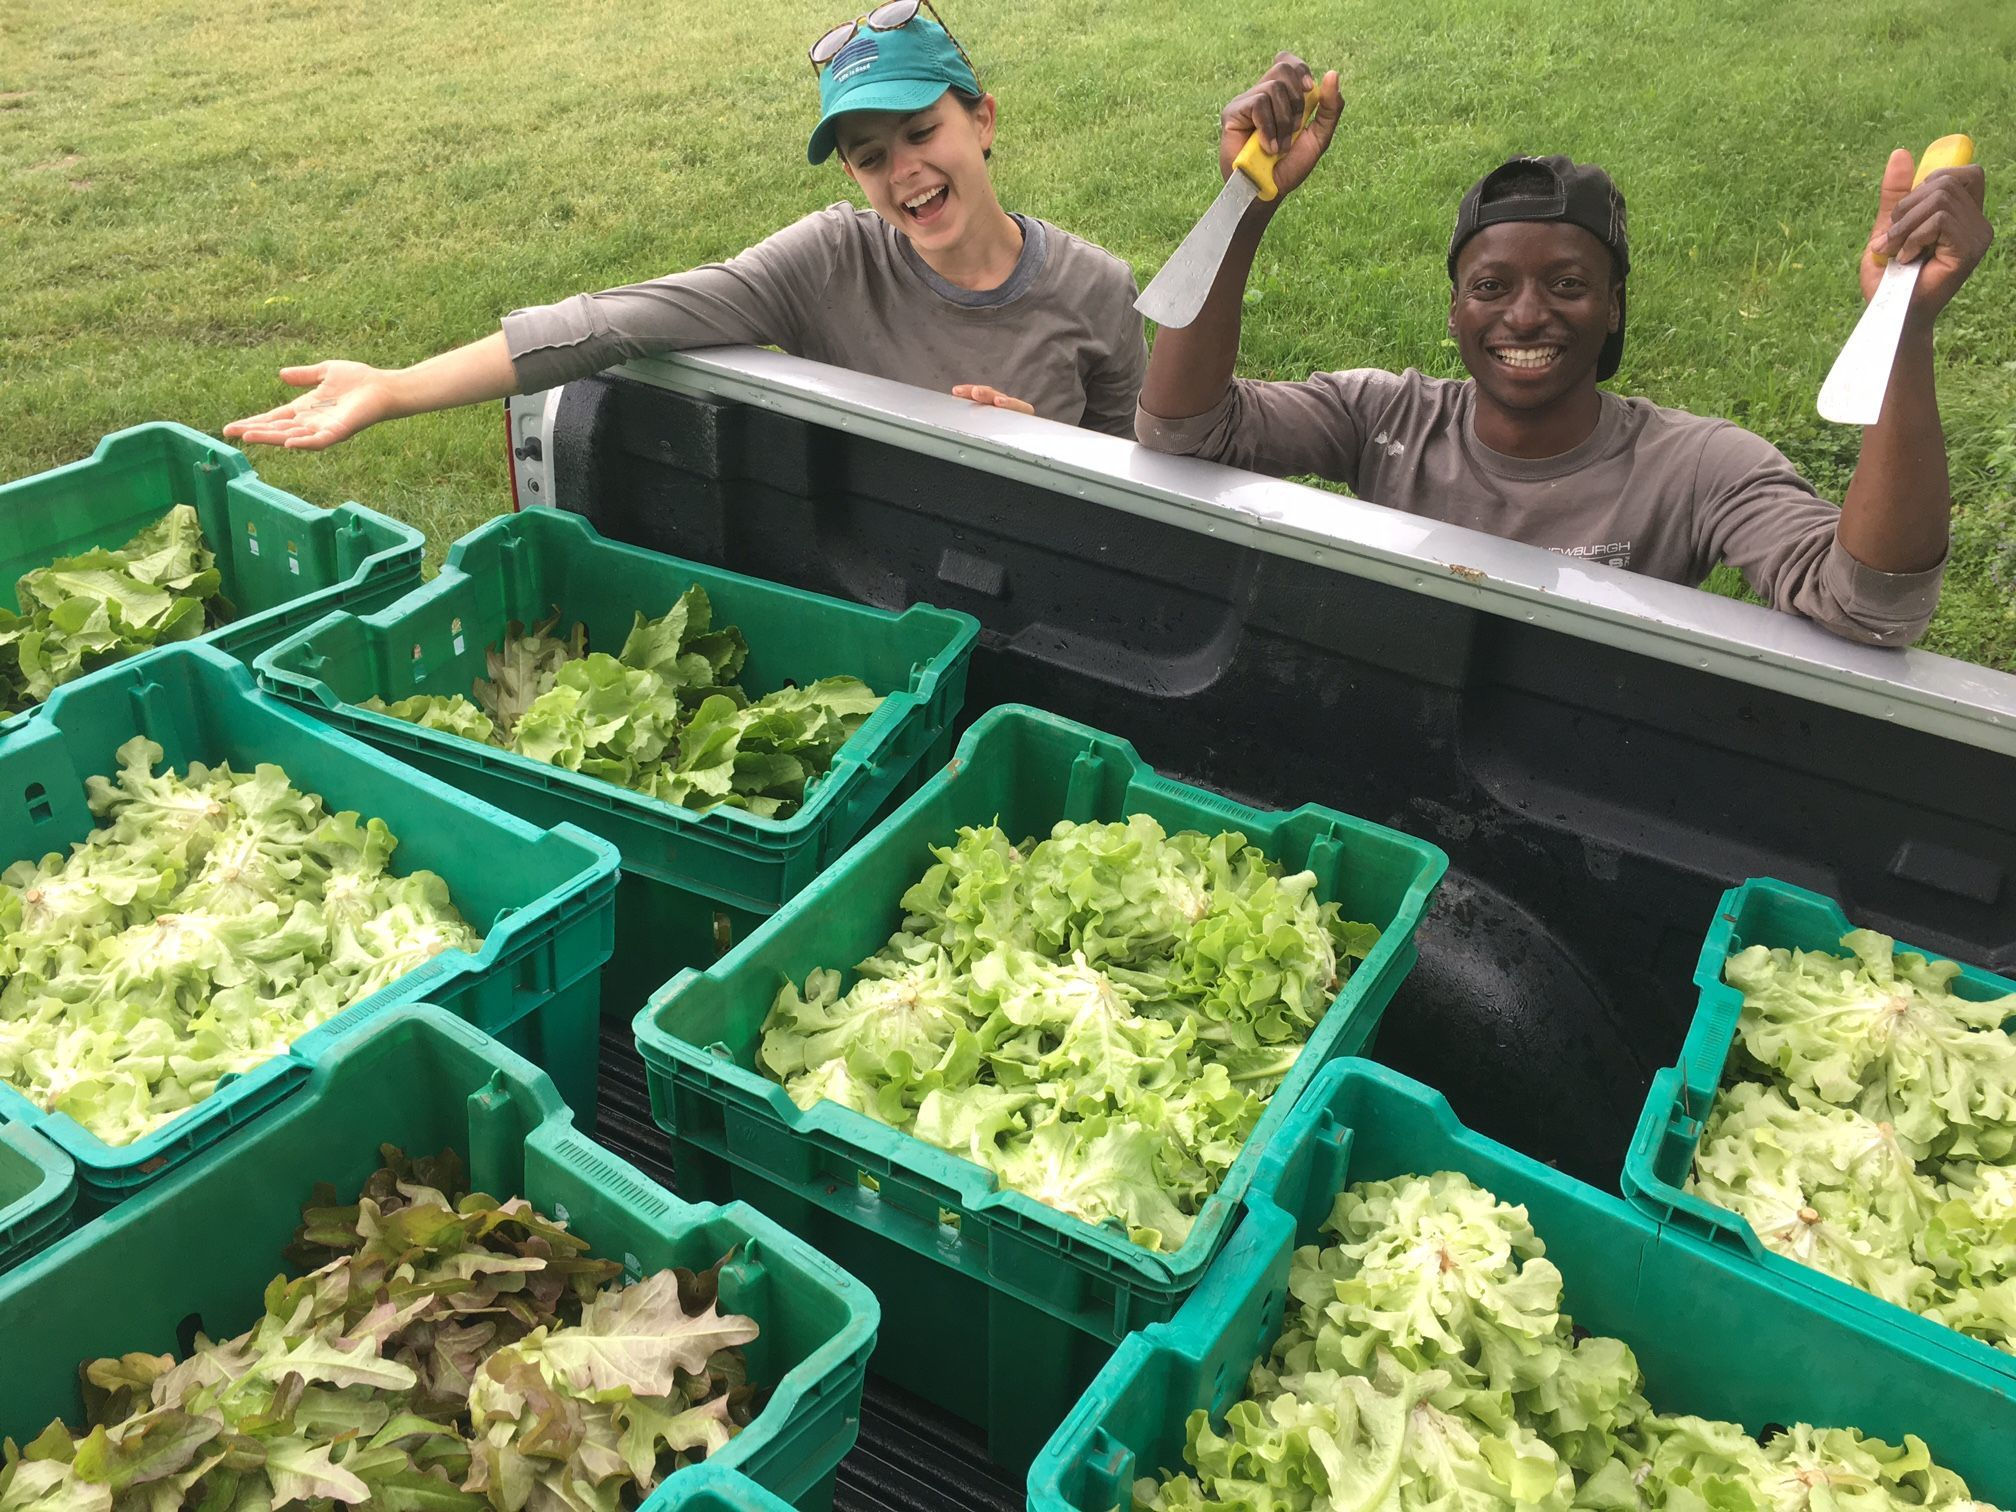 Common Ground Farm apprentices Alexis O'Brien, left, and Kantu Thole are shown during a past season preparing a truck load of lettuce to go to the Beacon schools.